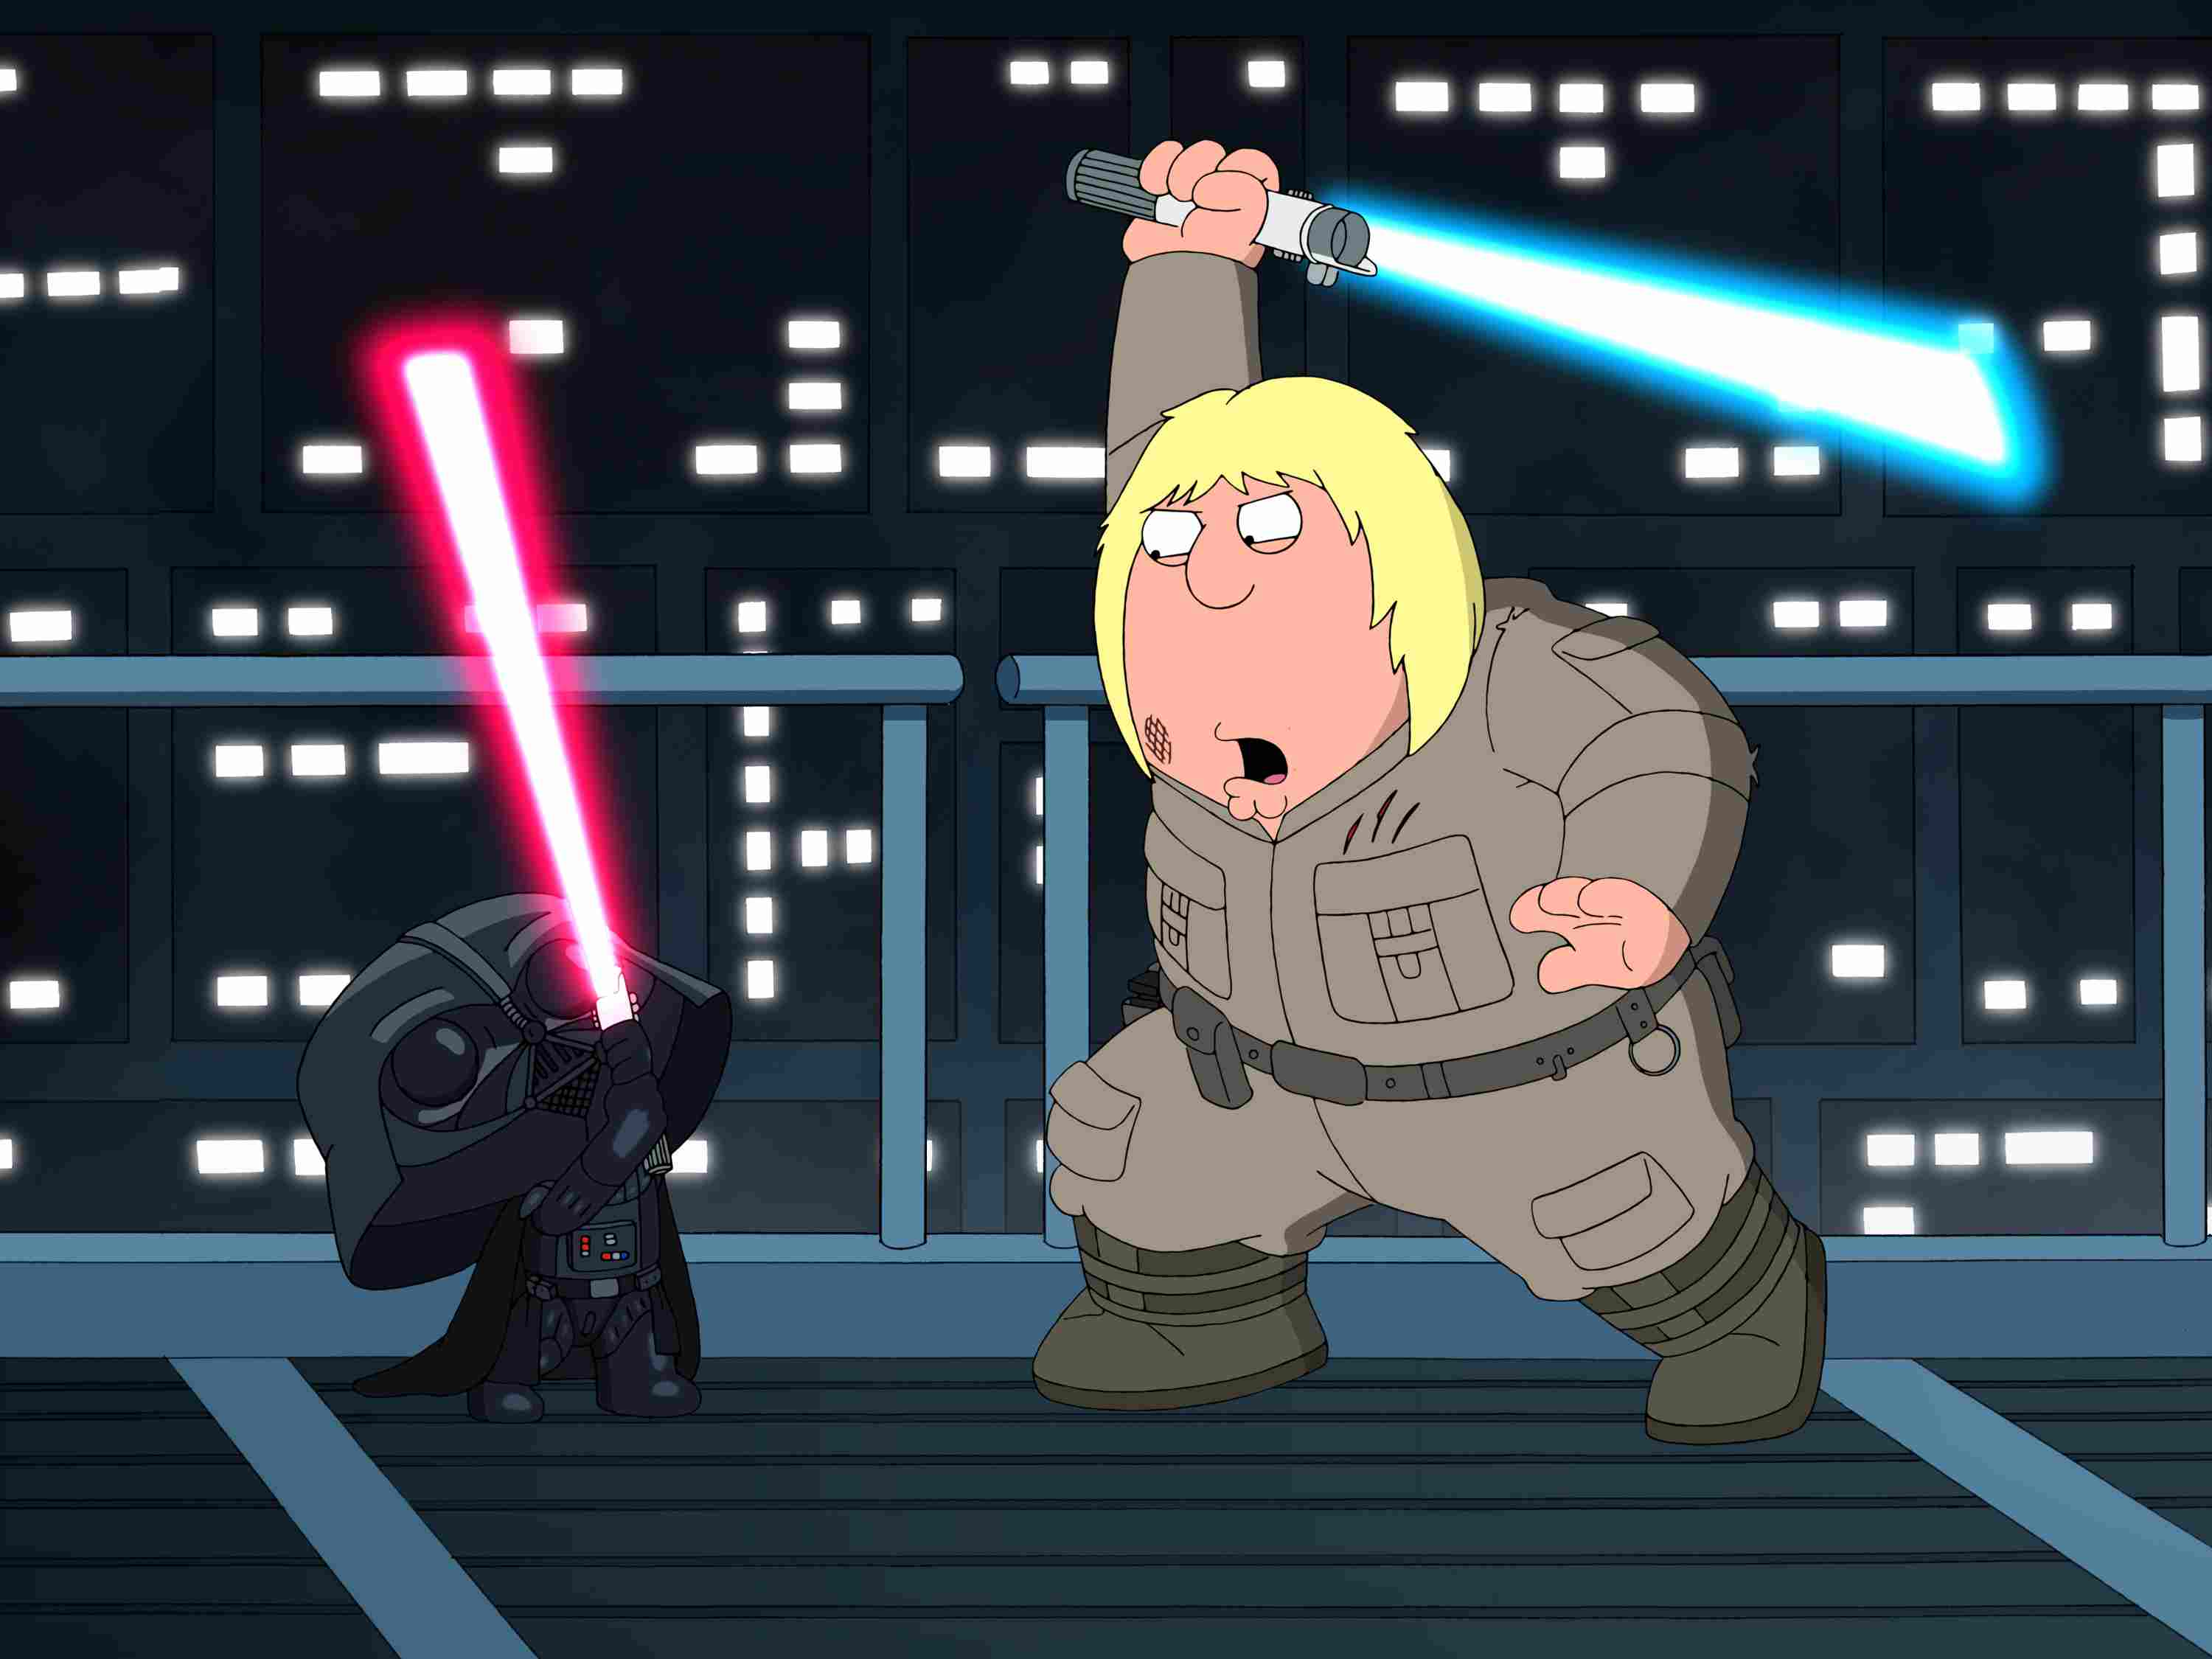 Family Guy Star Wars Pictures - Picture of Stewie and Chris